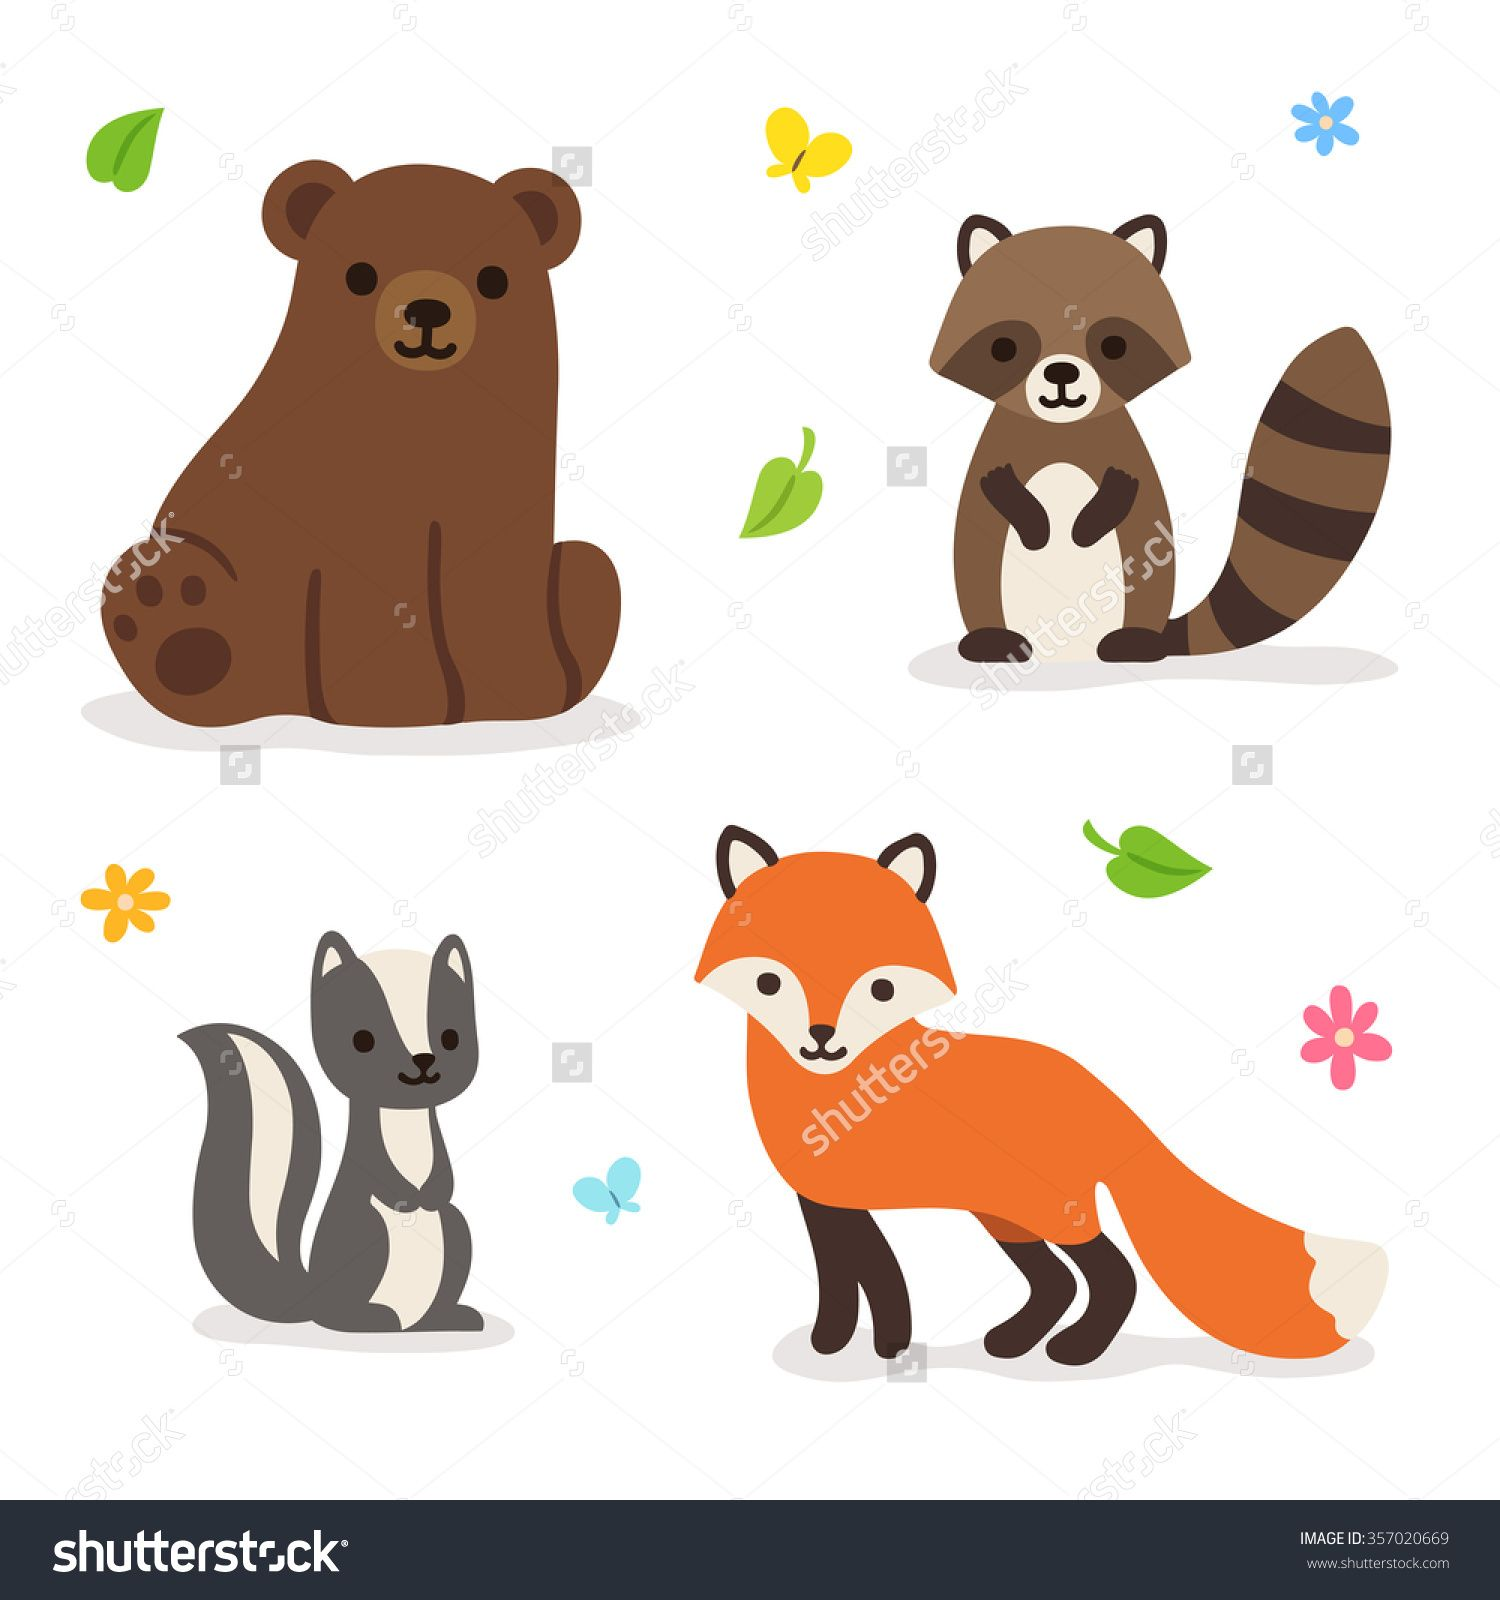 Collection of cartoon forest animals images. Big set of